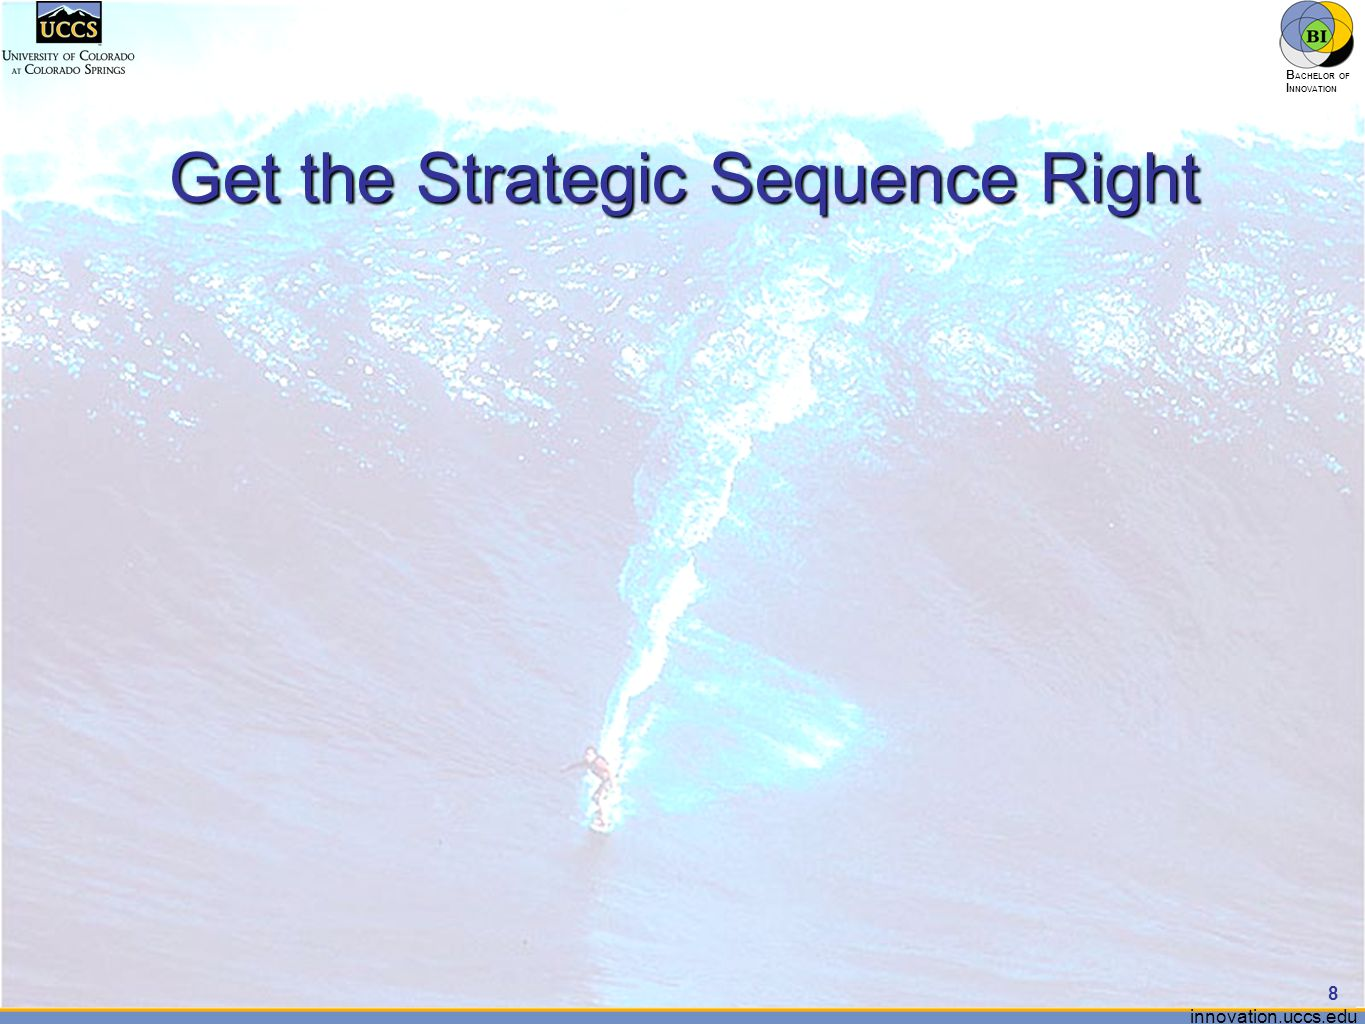 innovation.uccs.edu B ACHELOR OF I NNOVATION ™ Get the Strategic Sequence Right 8